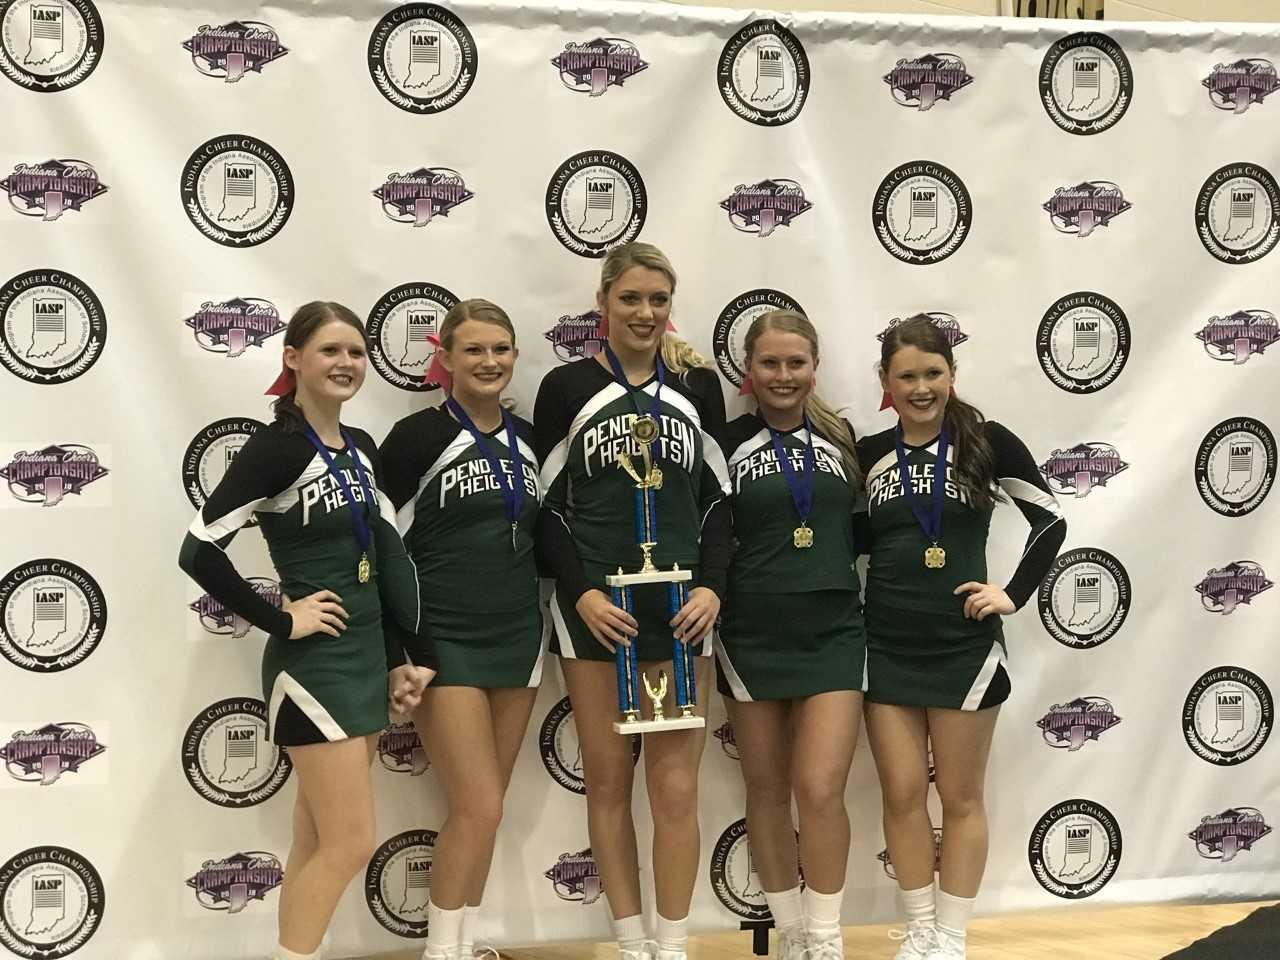 Stunt Group Wins State